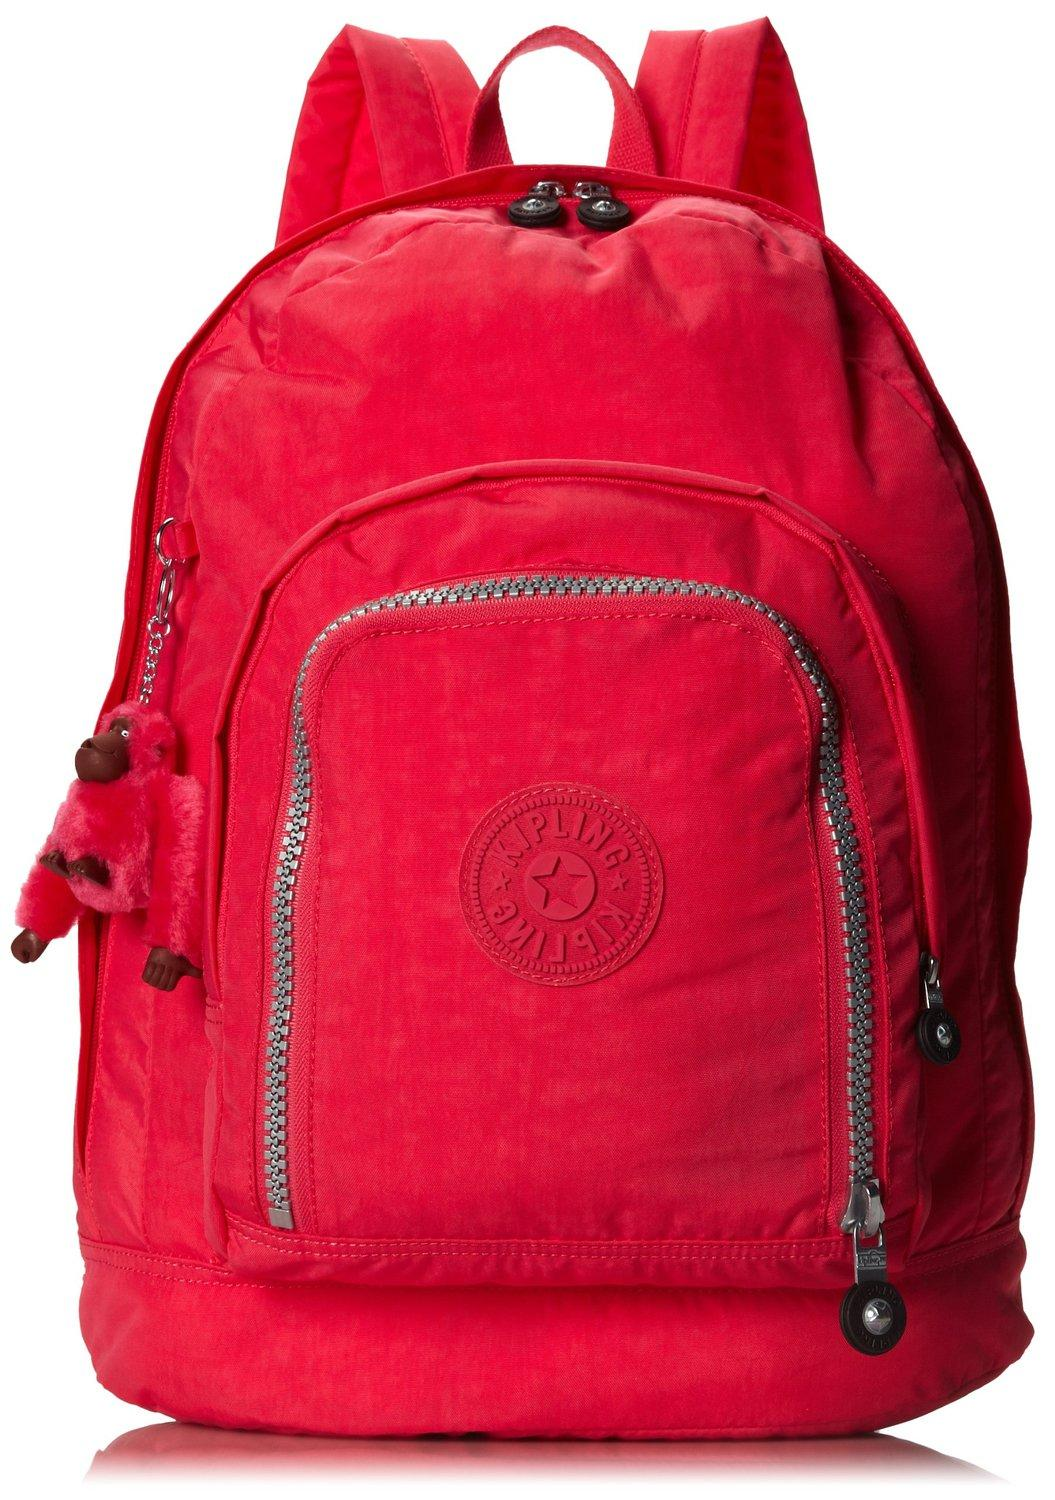 $53.51 Kipling Hal Backpack